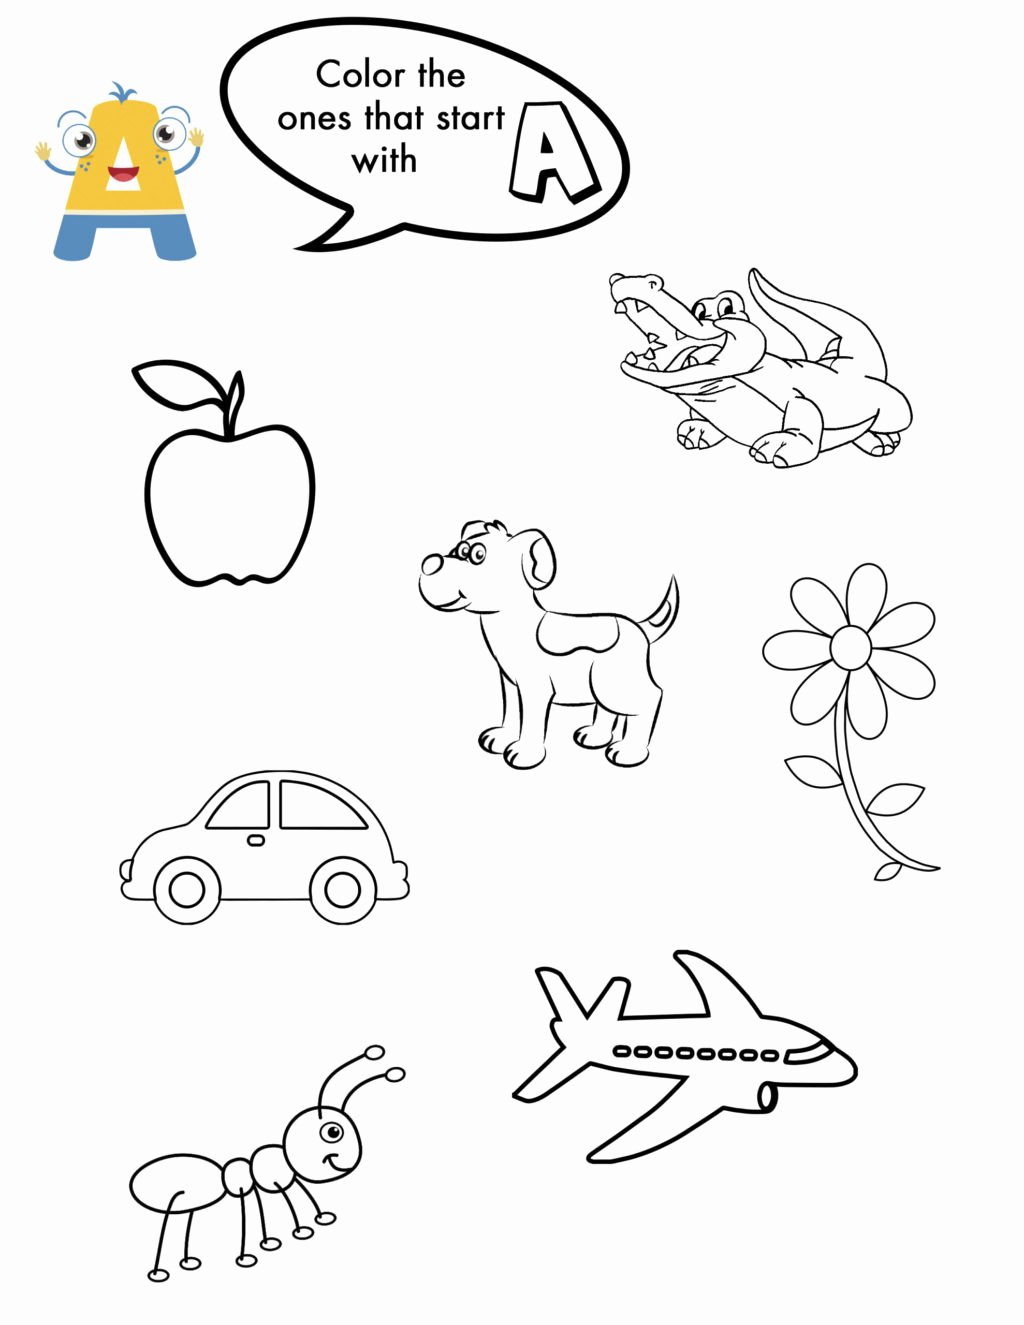 Goldilocks and the Three Bears Worksheets for Preschoolers Fresh Worksheet the Difference Printable Practice 6th Grade Math